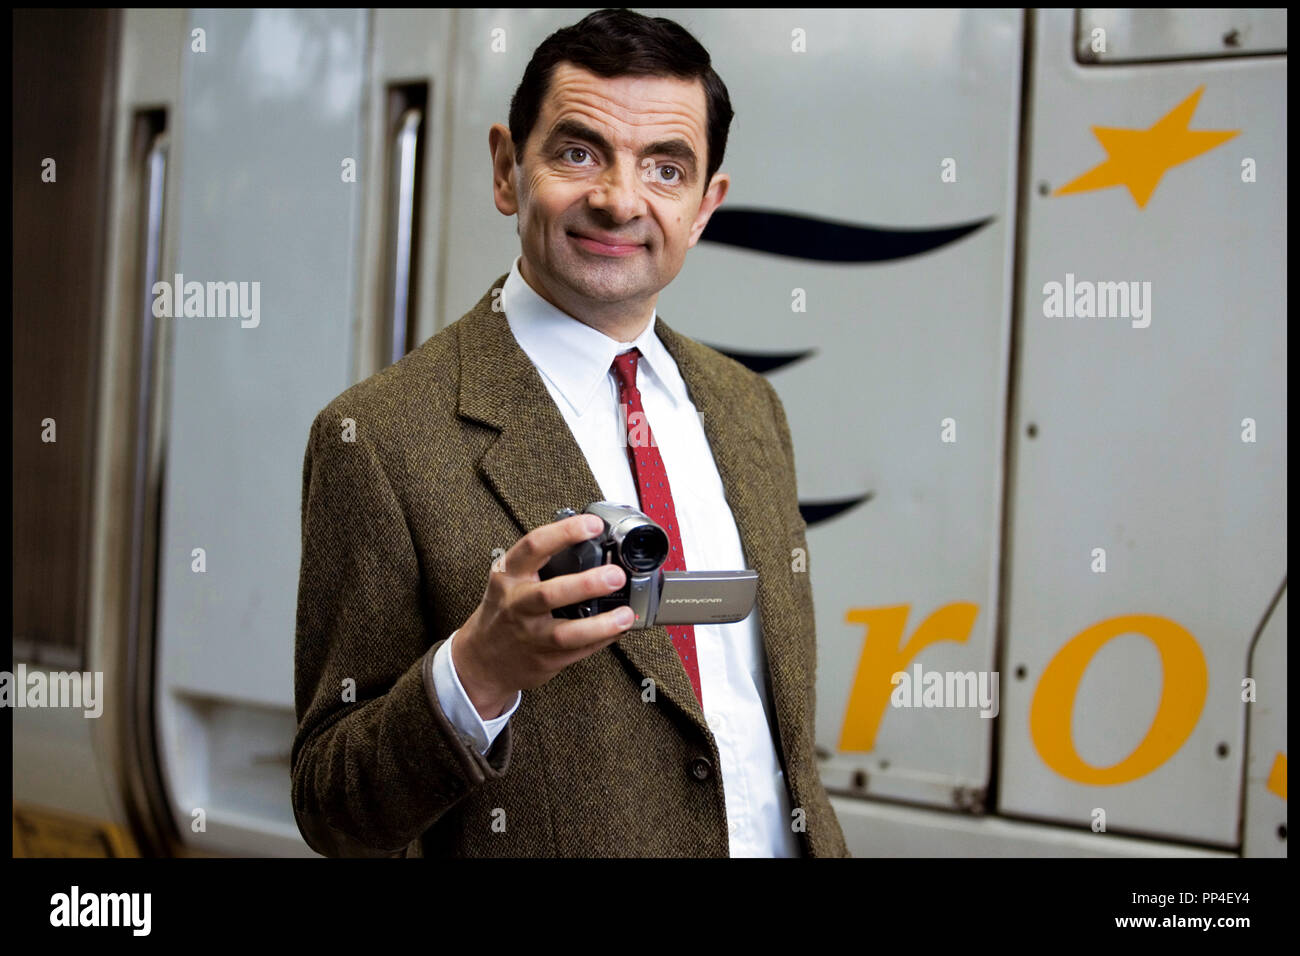 Mr Bean Mr Bean And Camera Stock Photos Mr Bean And Camera Stock Images